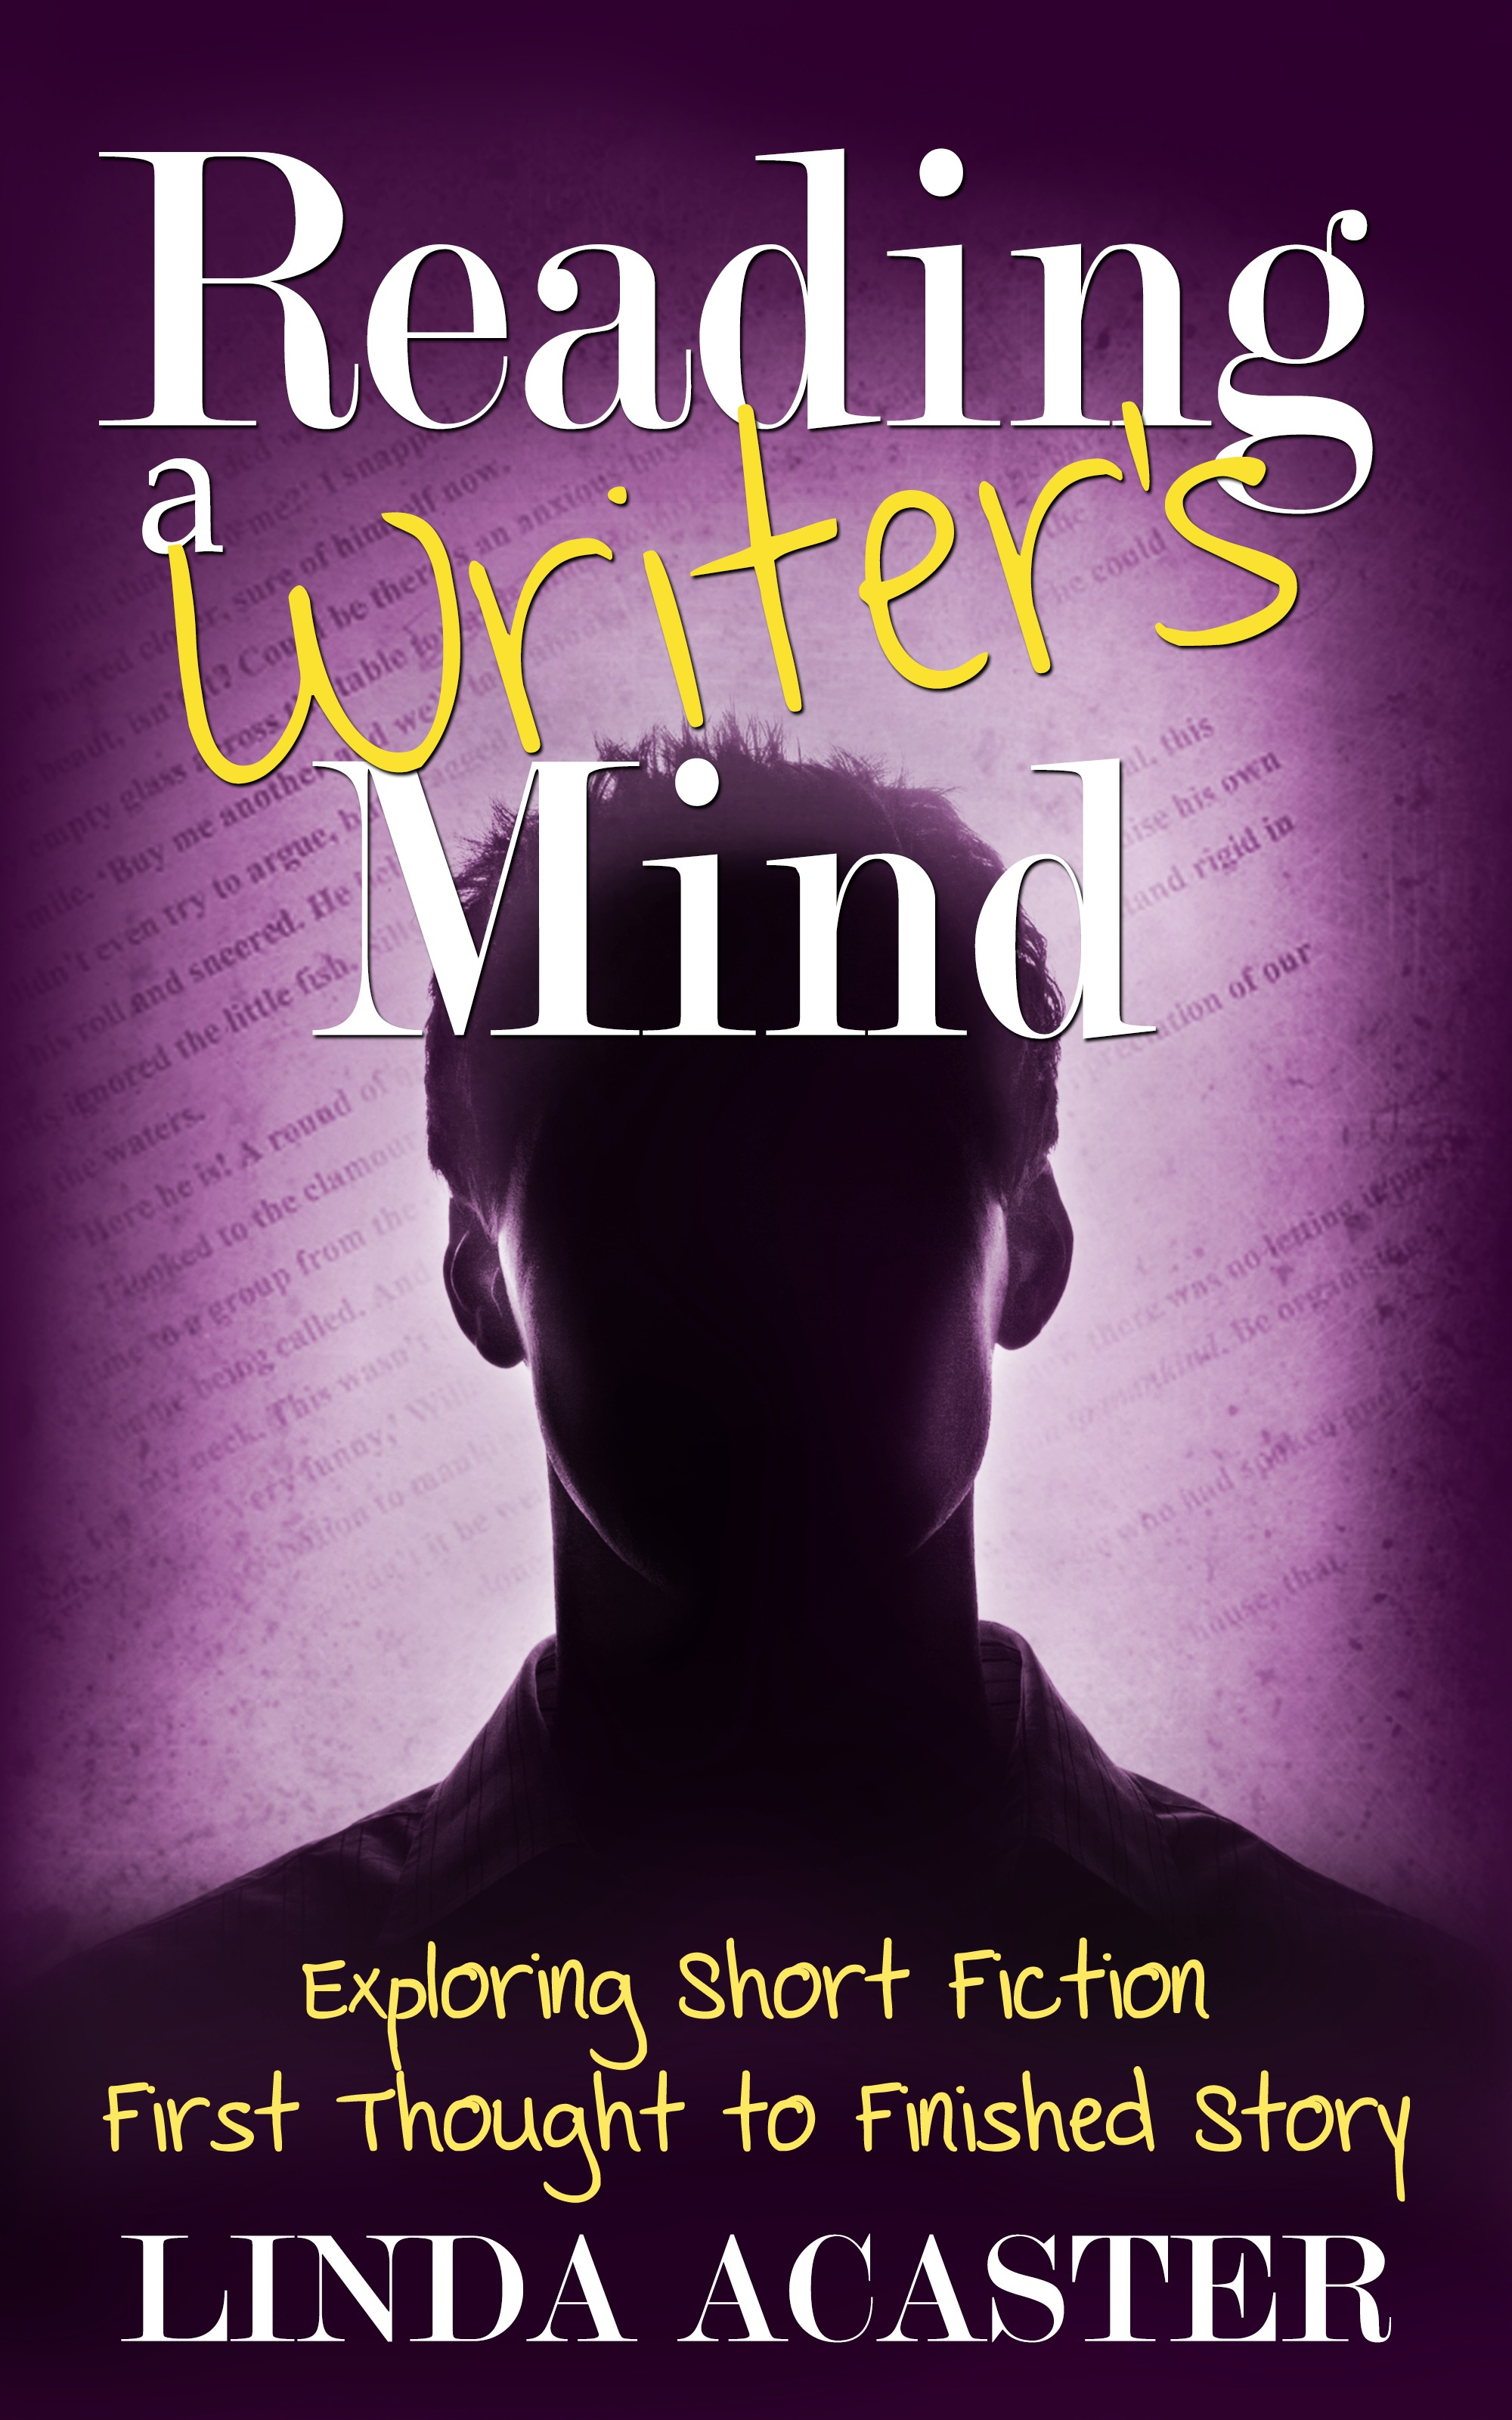 Reading a Writer's Mind: Exploring Short Fiction - First Thought to Finished Story